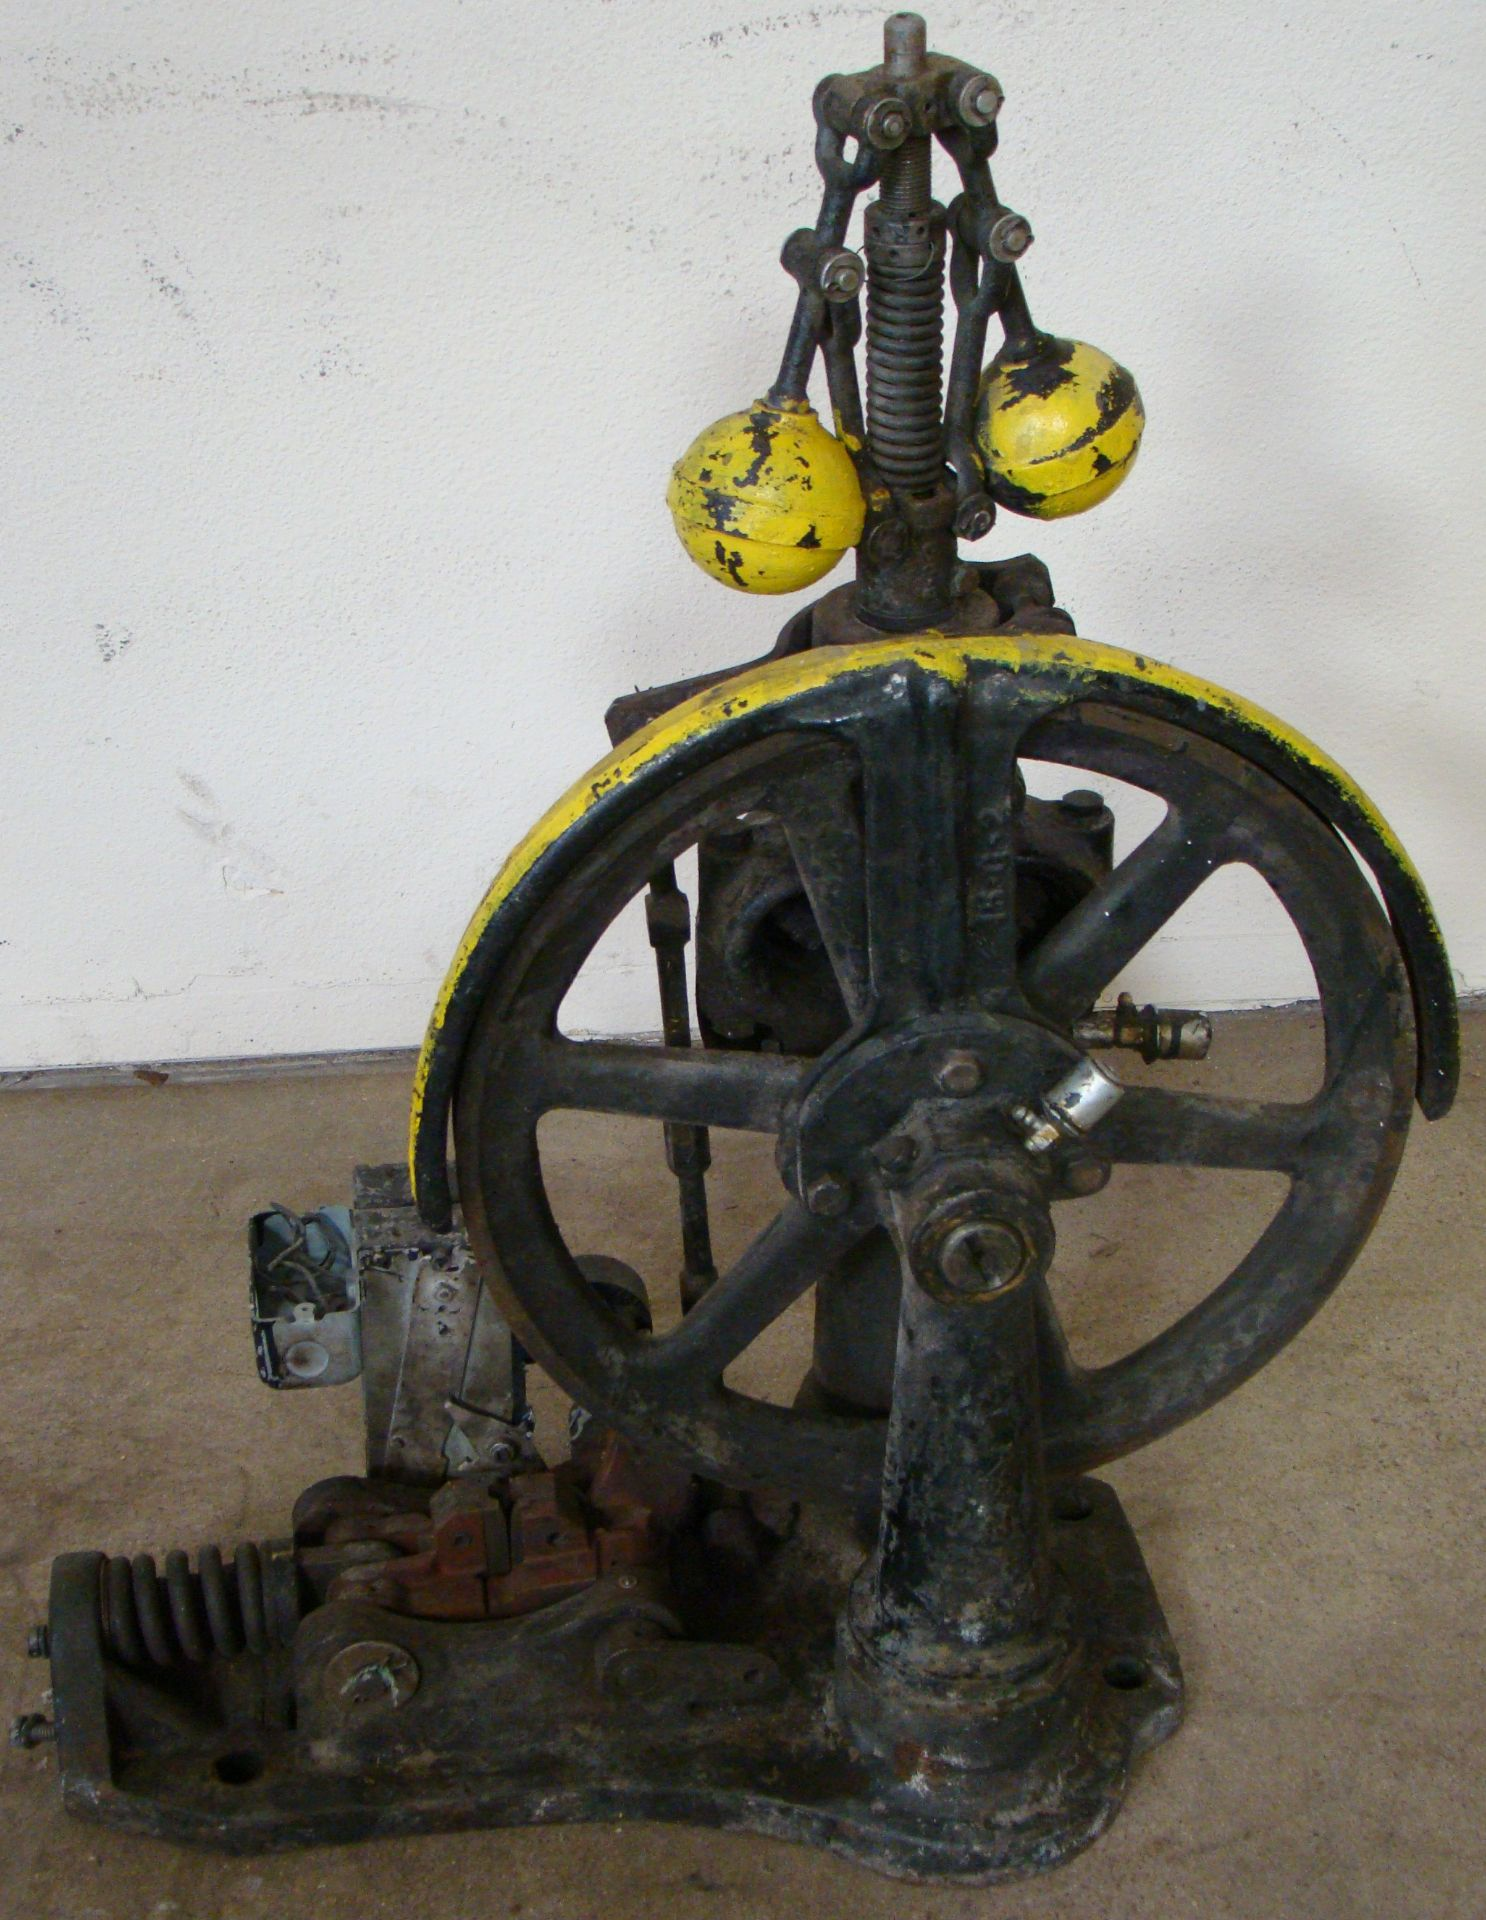 Lot 37 - Antique Otis Elevator Safety Governor Brake, Cast Iron Brass Steampunk Carspeed, 700 FPM